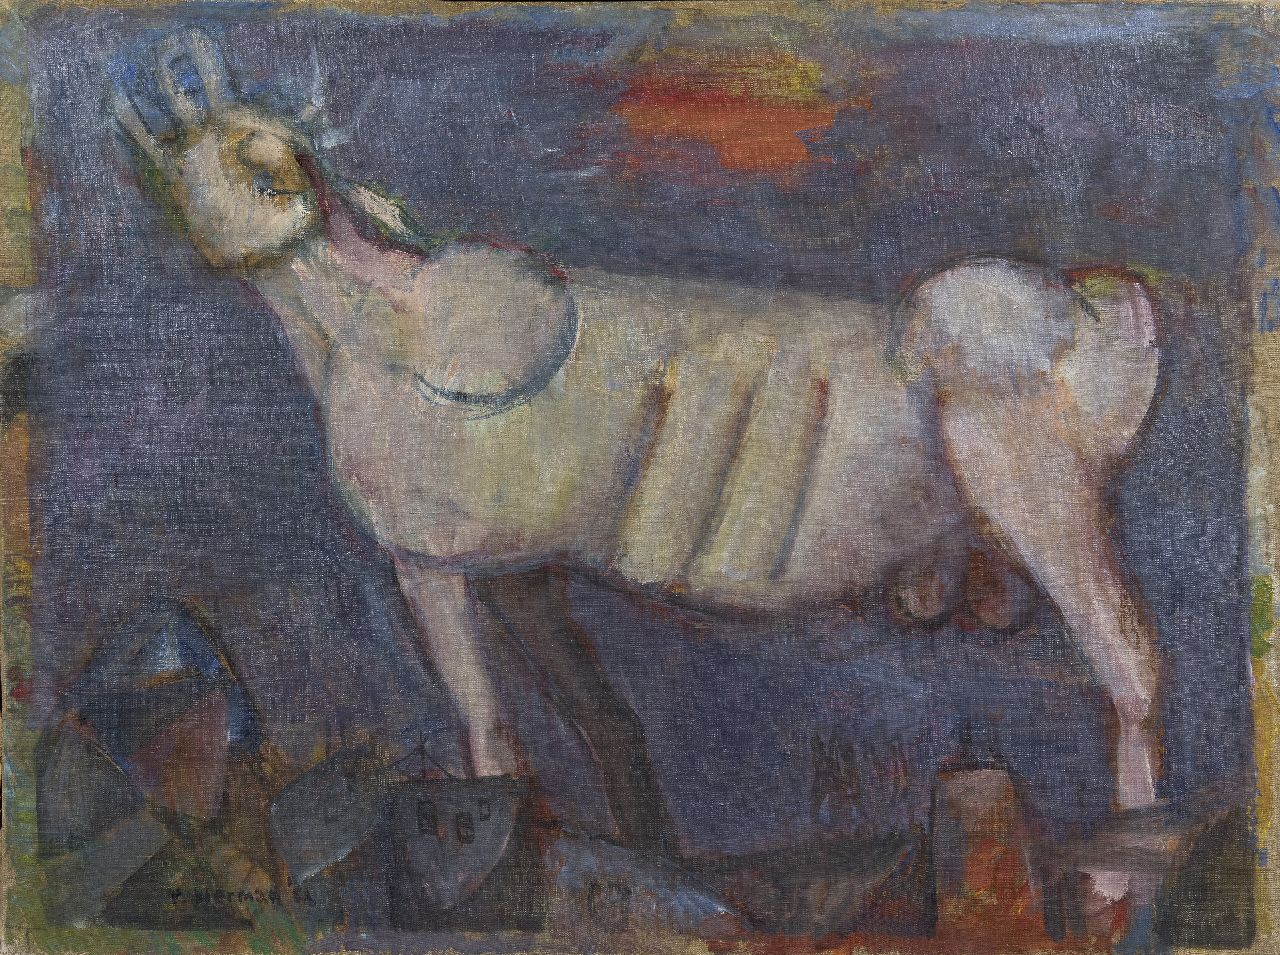 Rudi Bierman | Roaring bull, oil on canvas, 60.5 x 80.5 cm, signed l.l. and on the reverse and dated '52